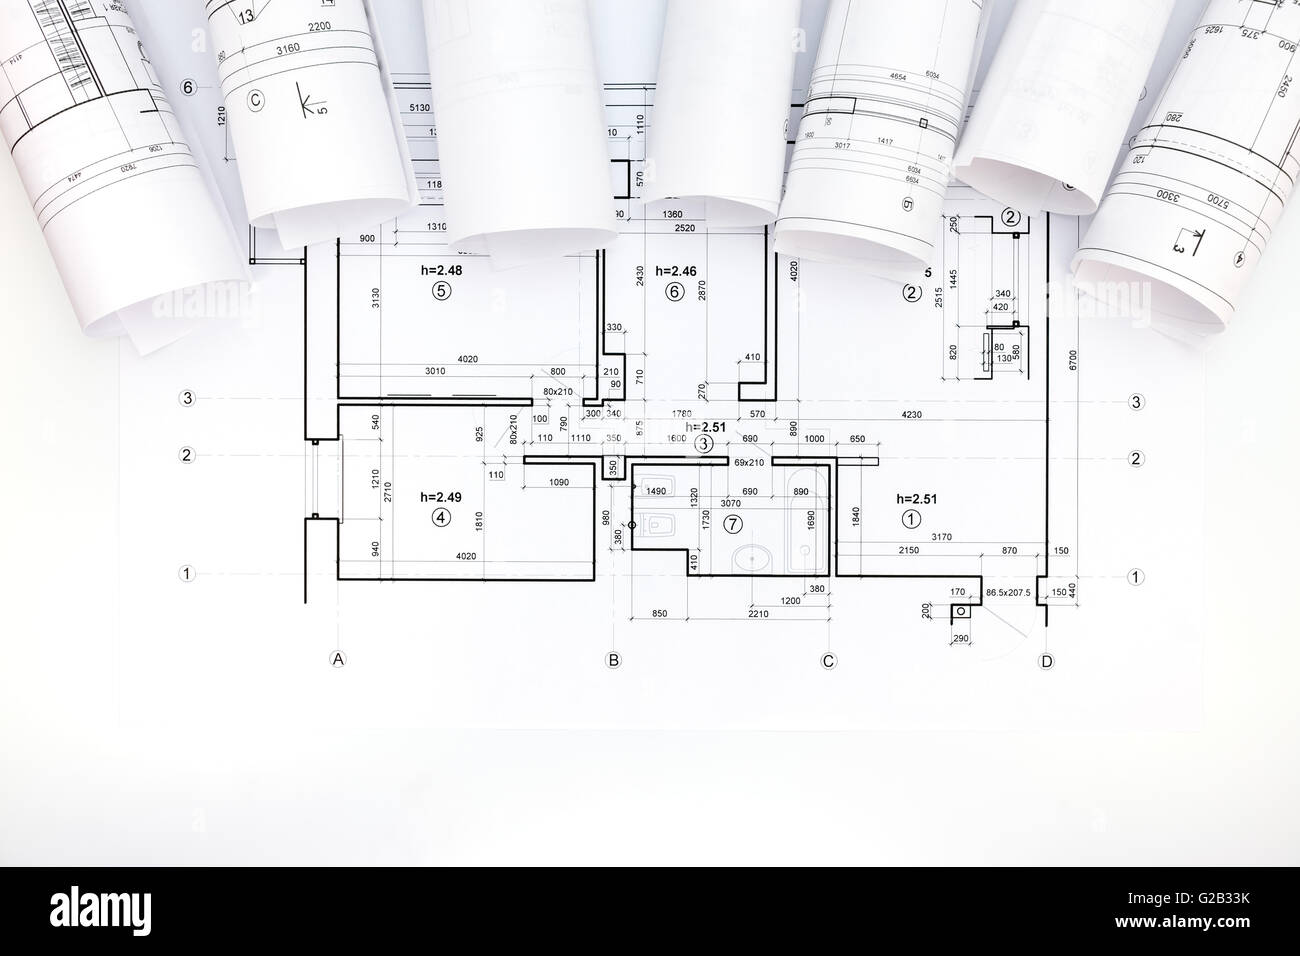 Architects workspace with rolled construction plans and blueprint architects workspace with rolled construction plans and blueprint malvernweather Image collections